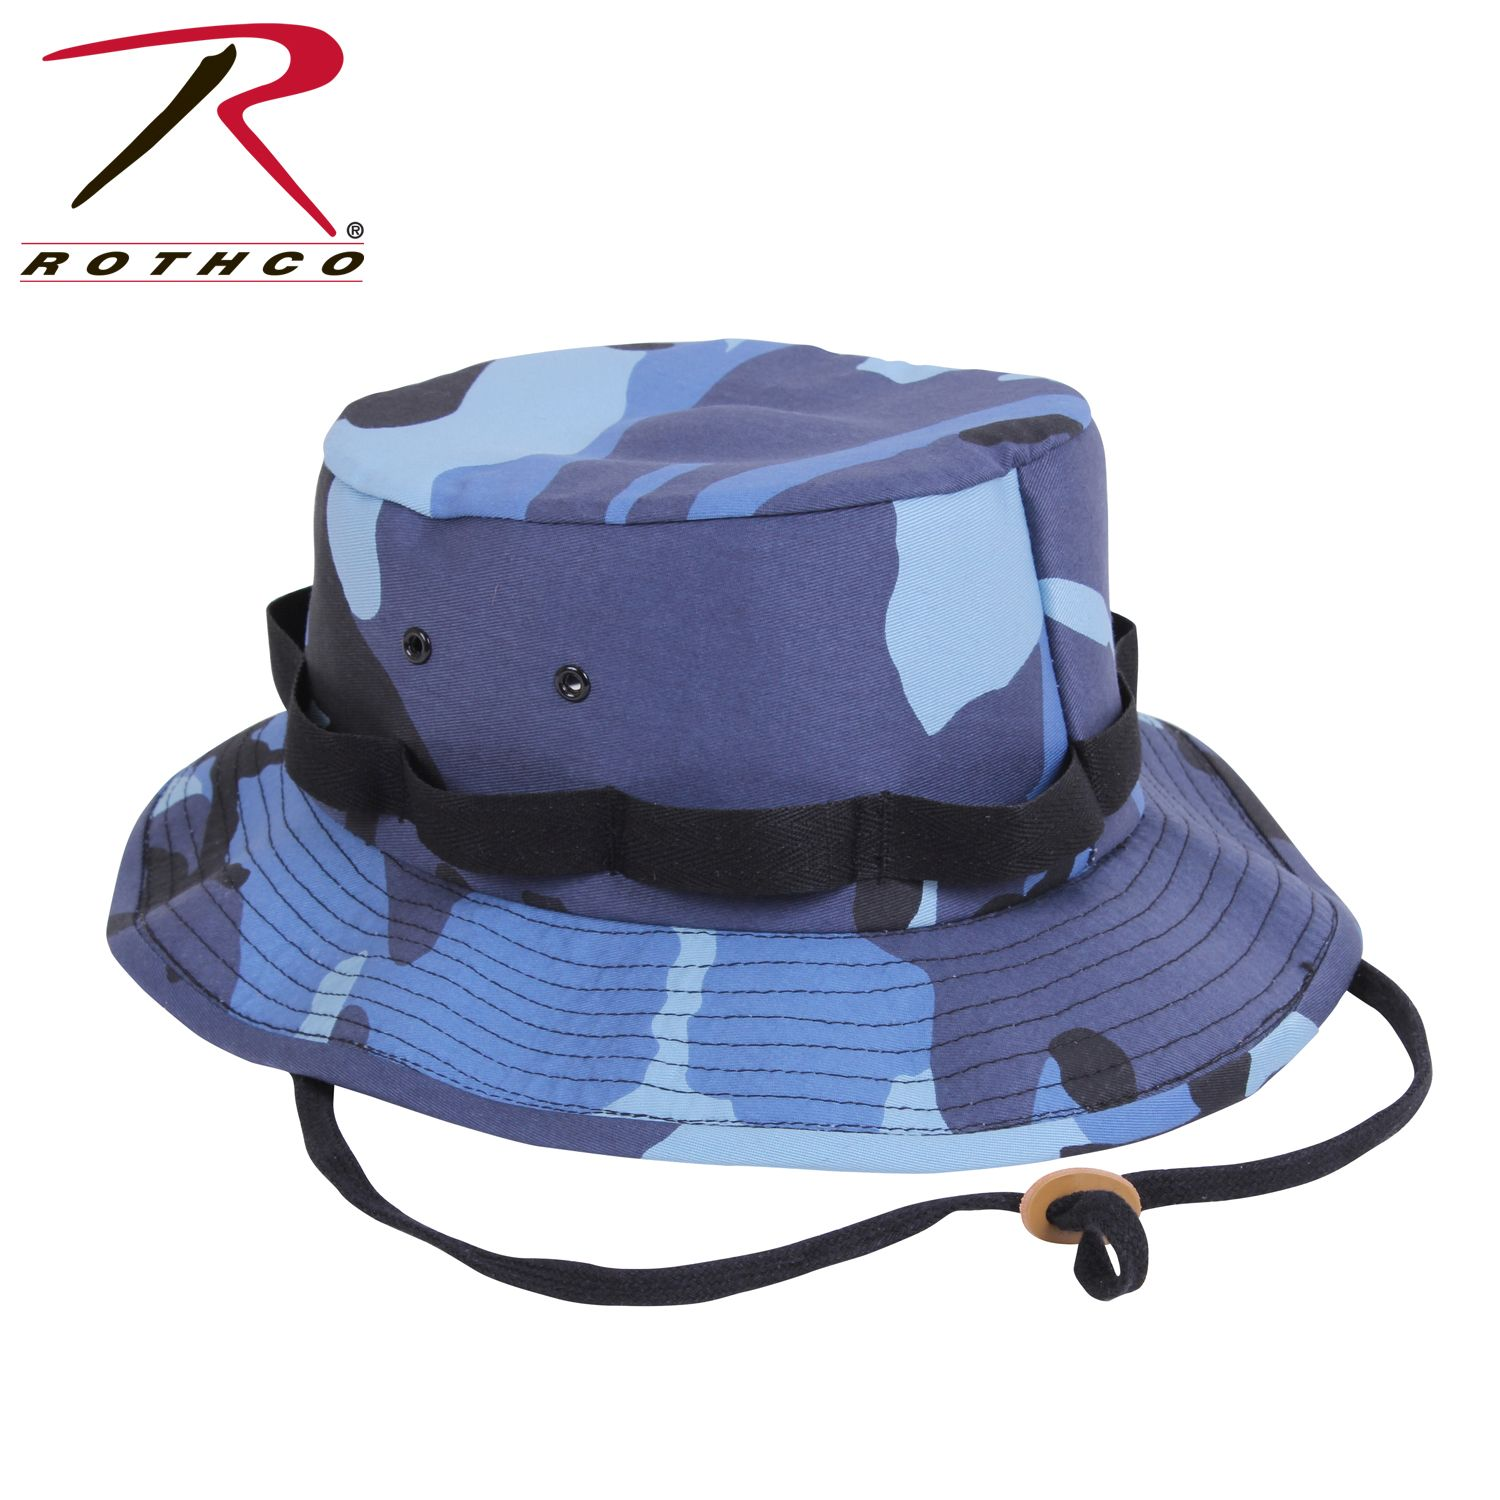 04cb7c67c576e Buy Rothco Camo Jungle Hat - Rothco Online at Best price - IL